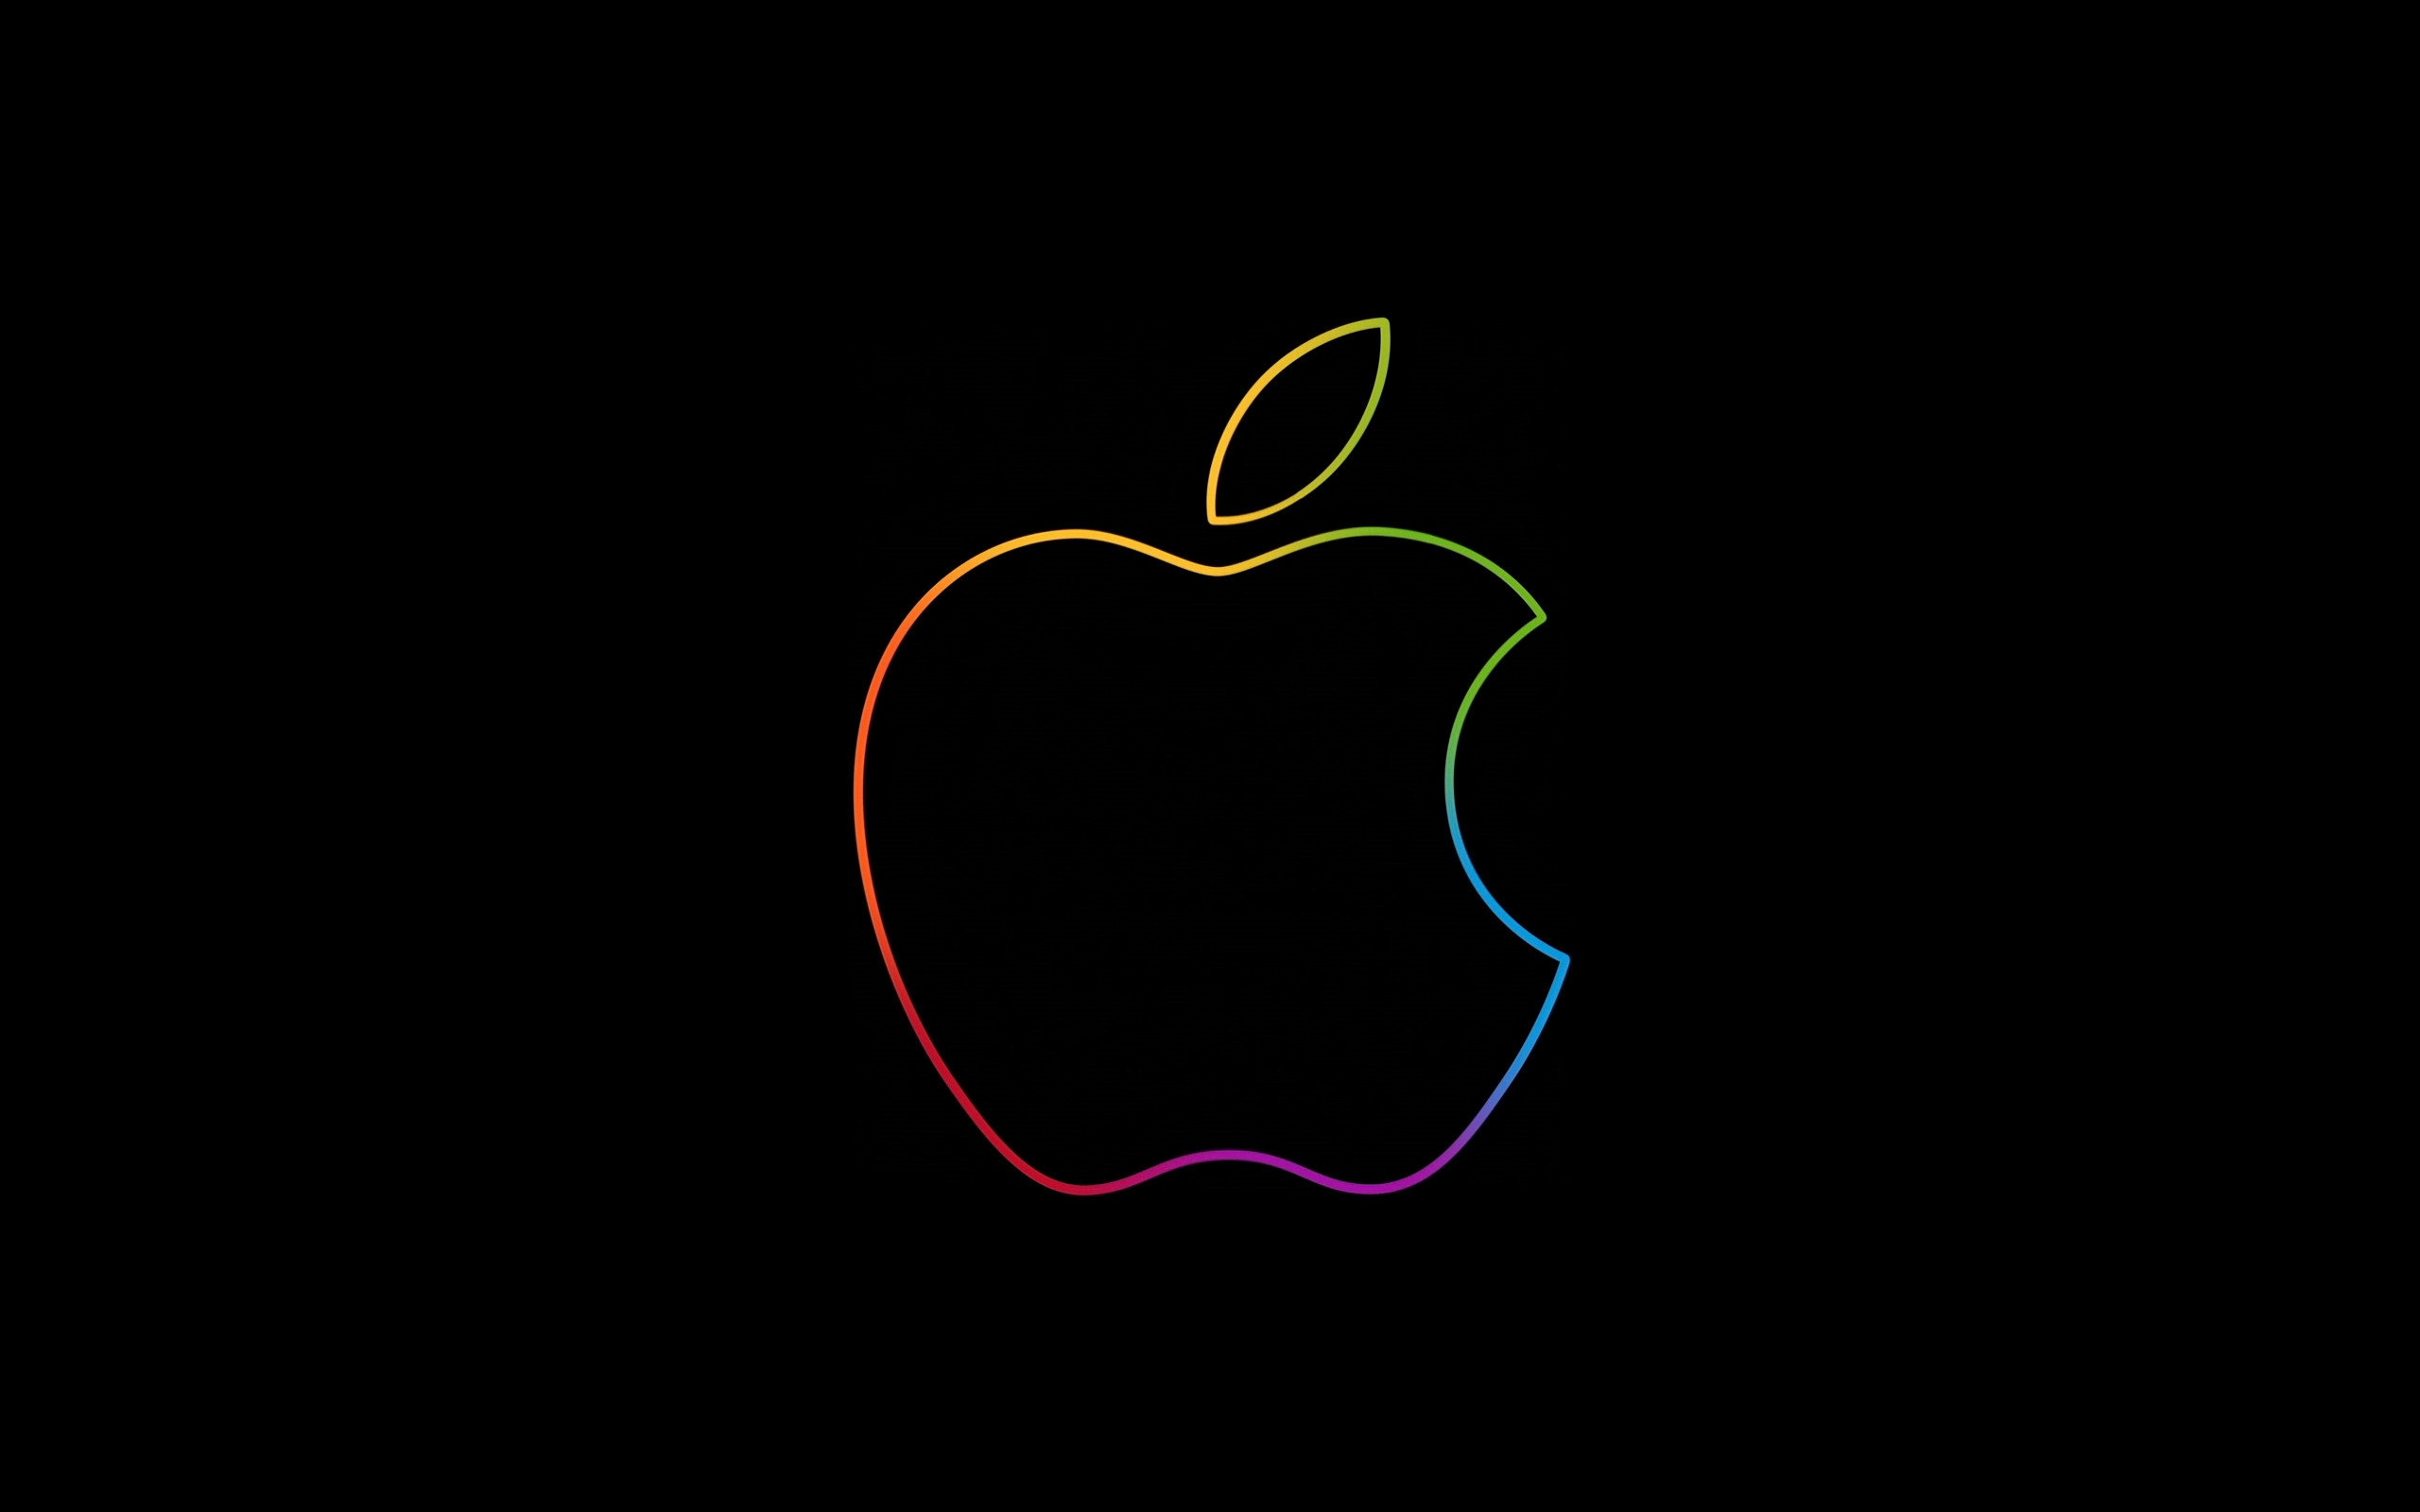 The famous Apple logo wallpaper 2560x1600